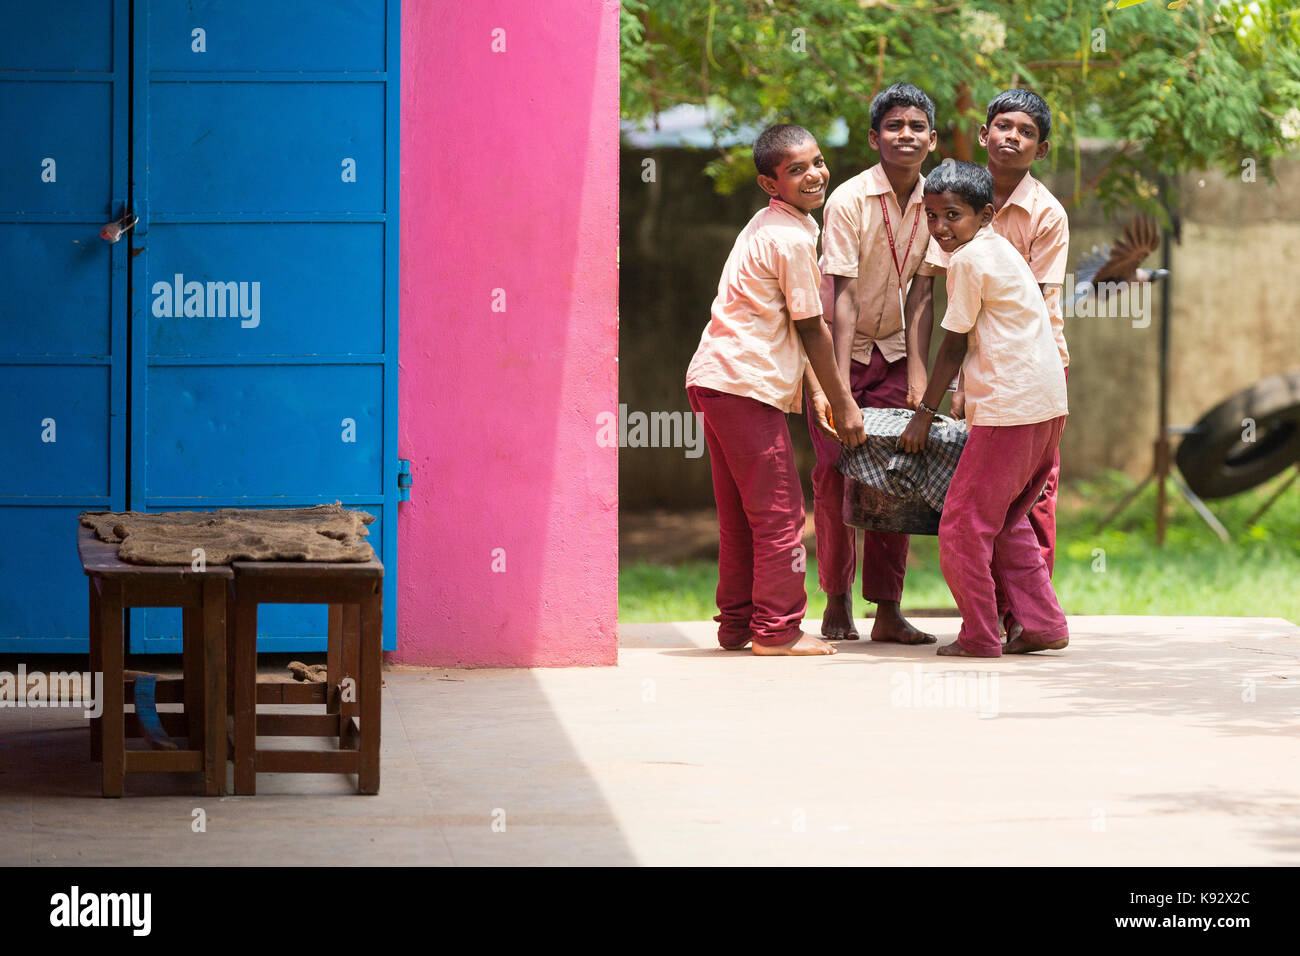 PONDICHERY, PUDUCHERY, INDIA - SEPTEMBER 04, 2017. Unidentified boys children bring the plate to be served at the Stock Photo